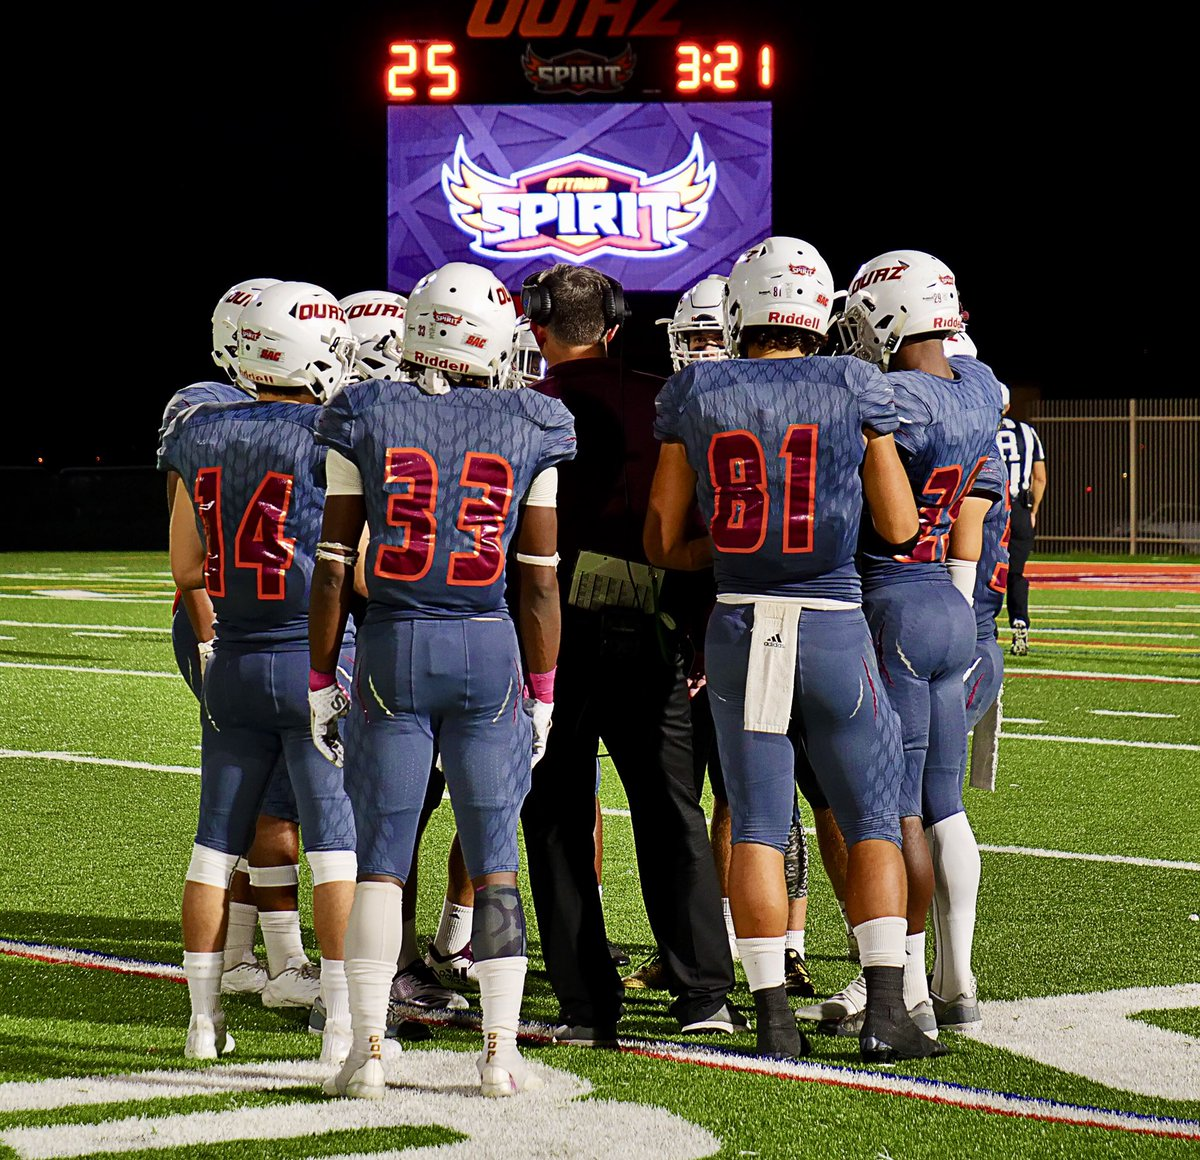 be15c638 OUAZ Football on Twitter: